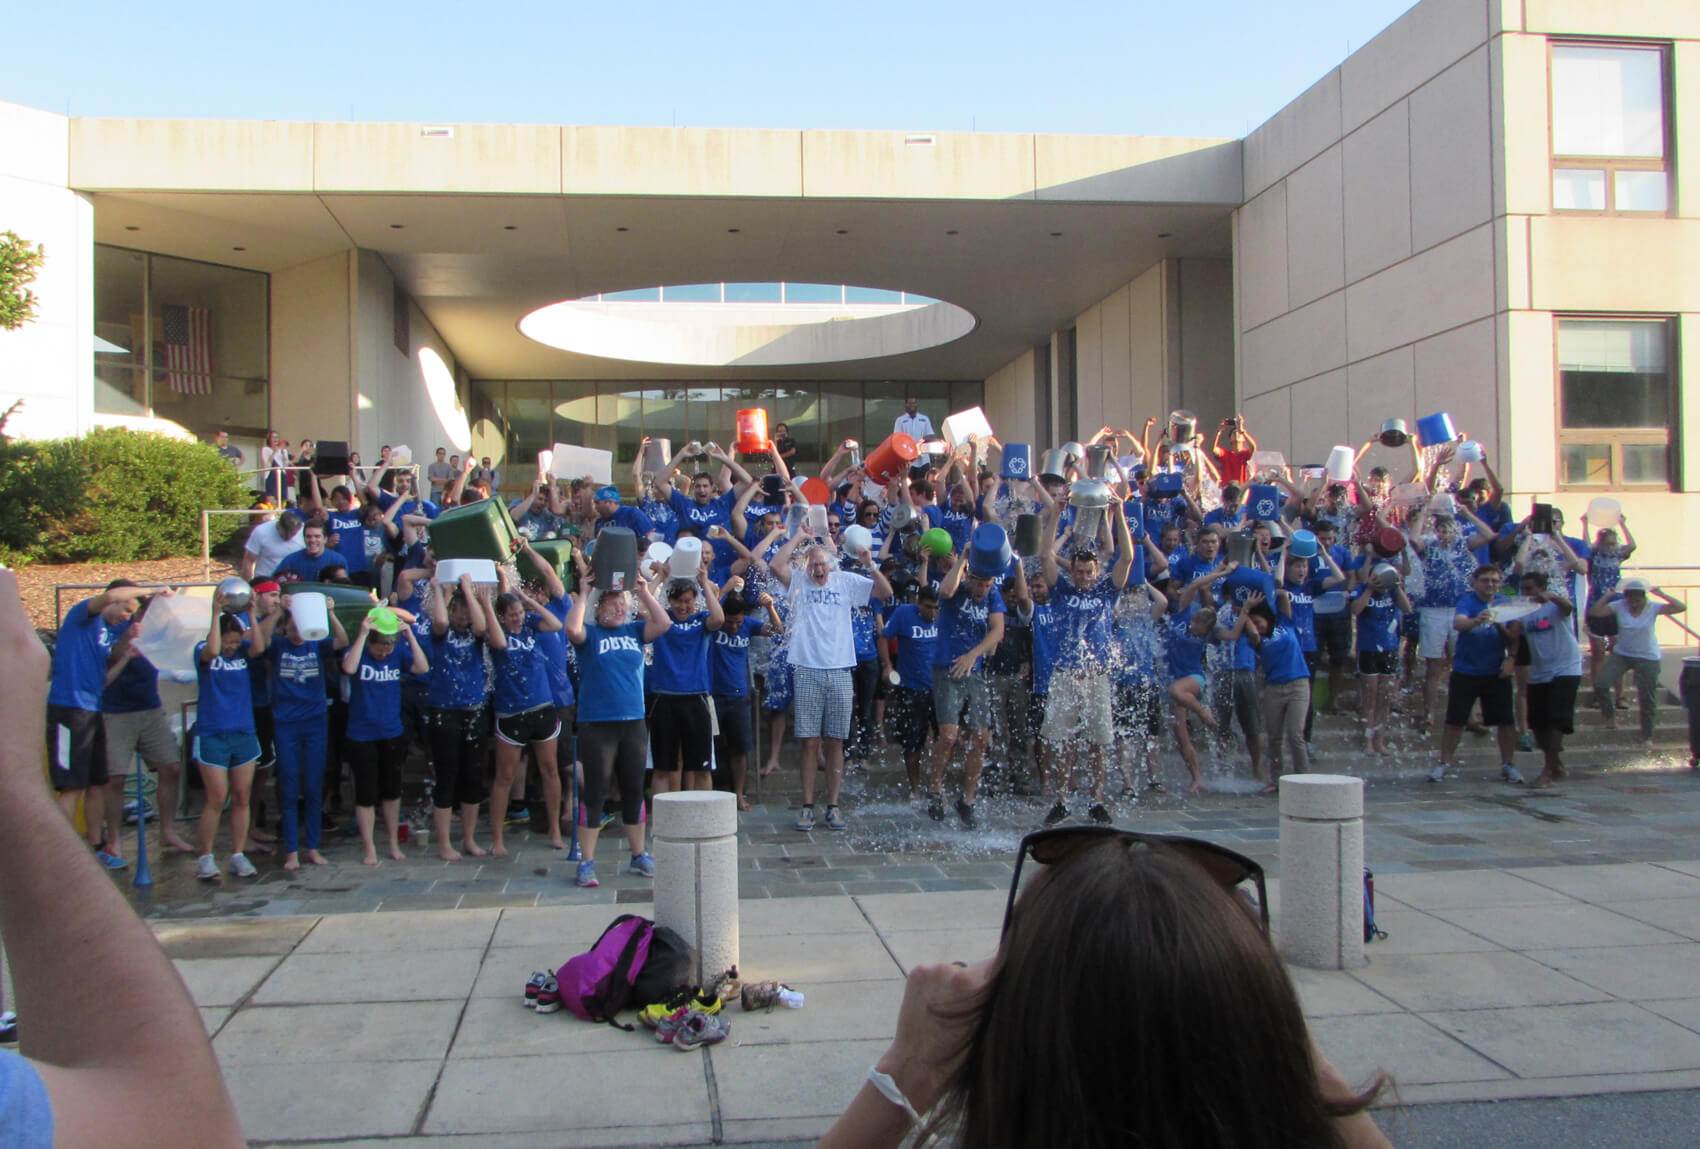 Dean Russ Morgan (center in white t-shirt) taking the ALS Ice Bucket Challenge with students